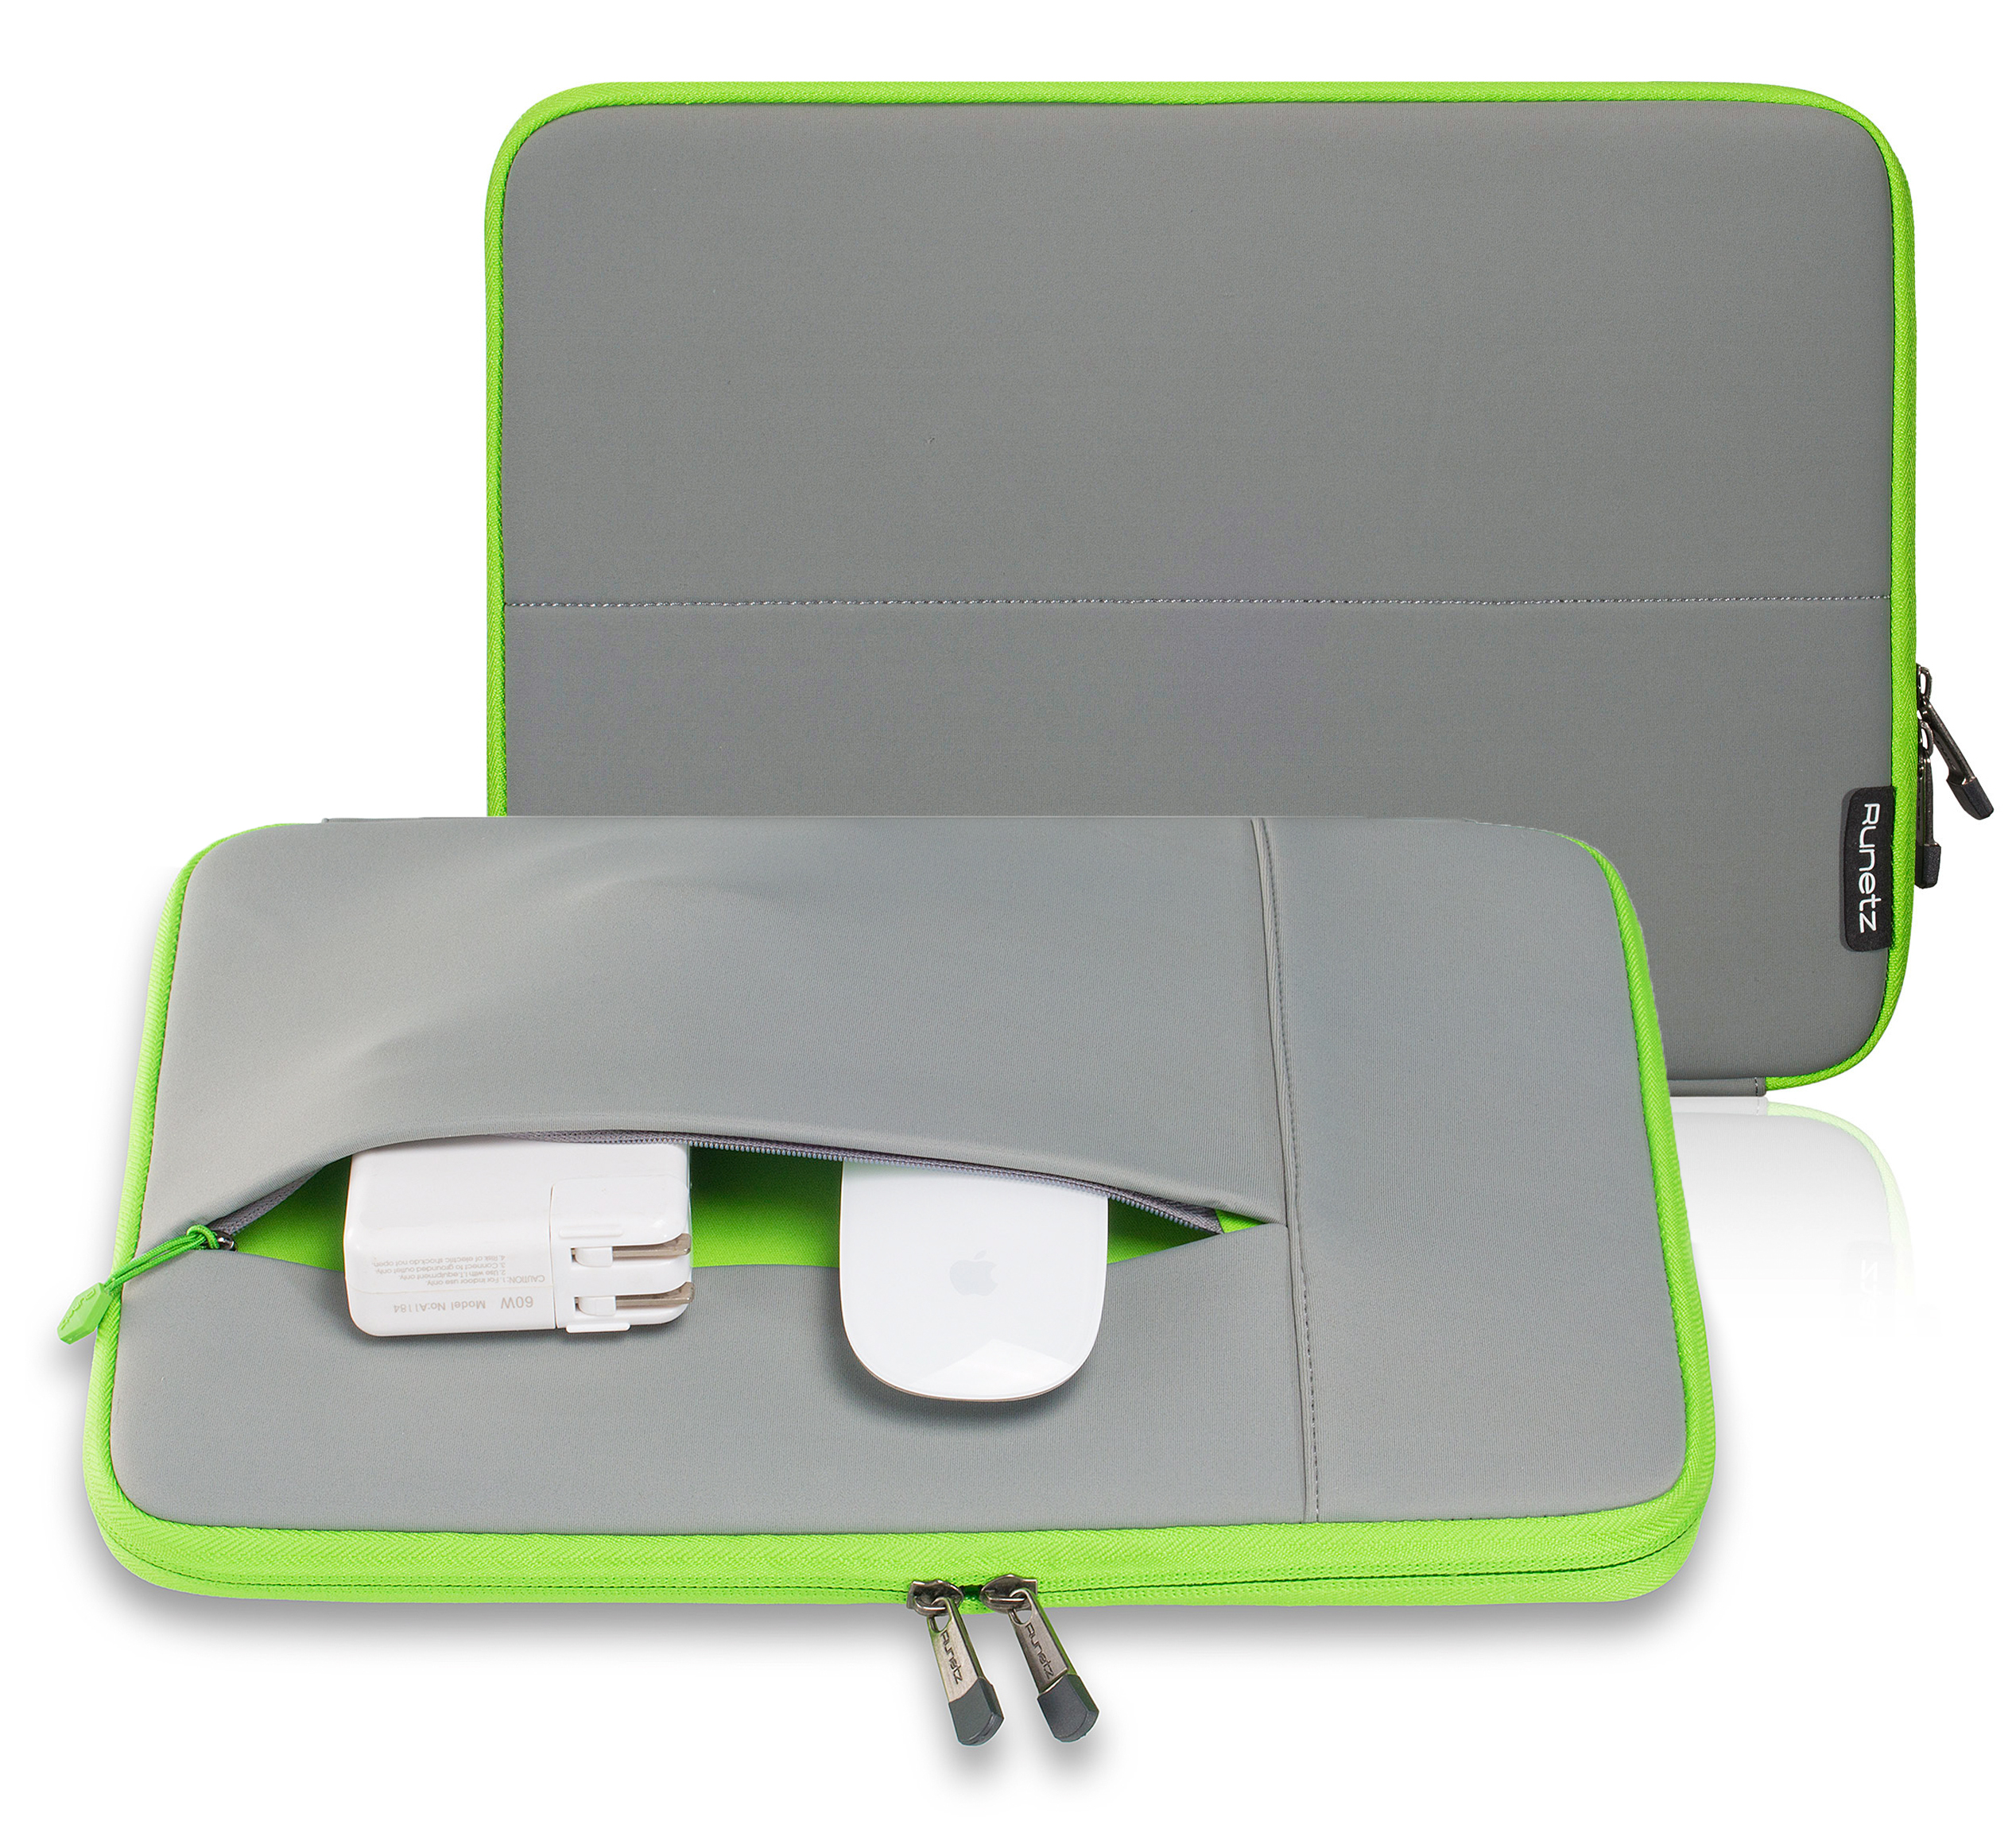 Housse neoprene macbook pro 13 28 images macbook for Housse macbook air 13